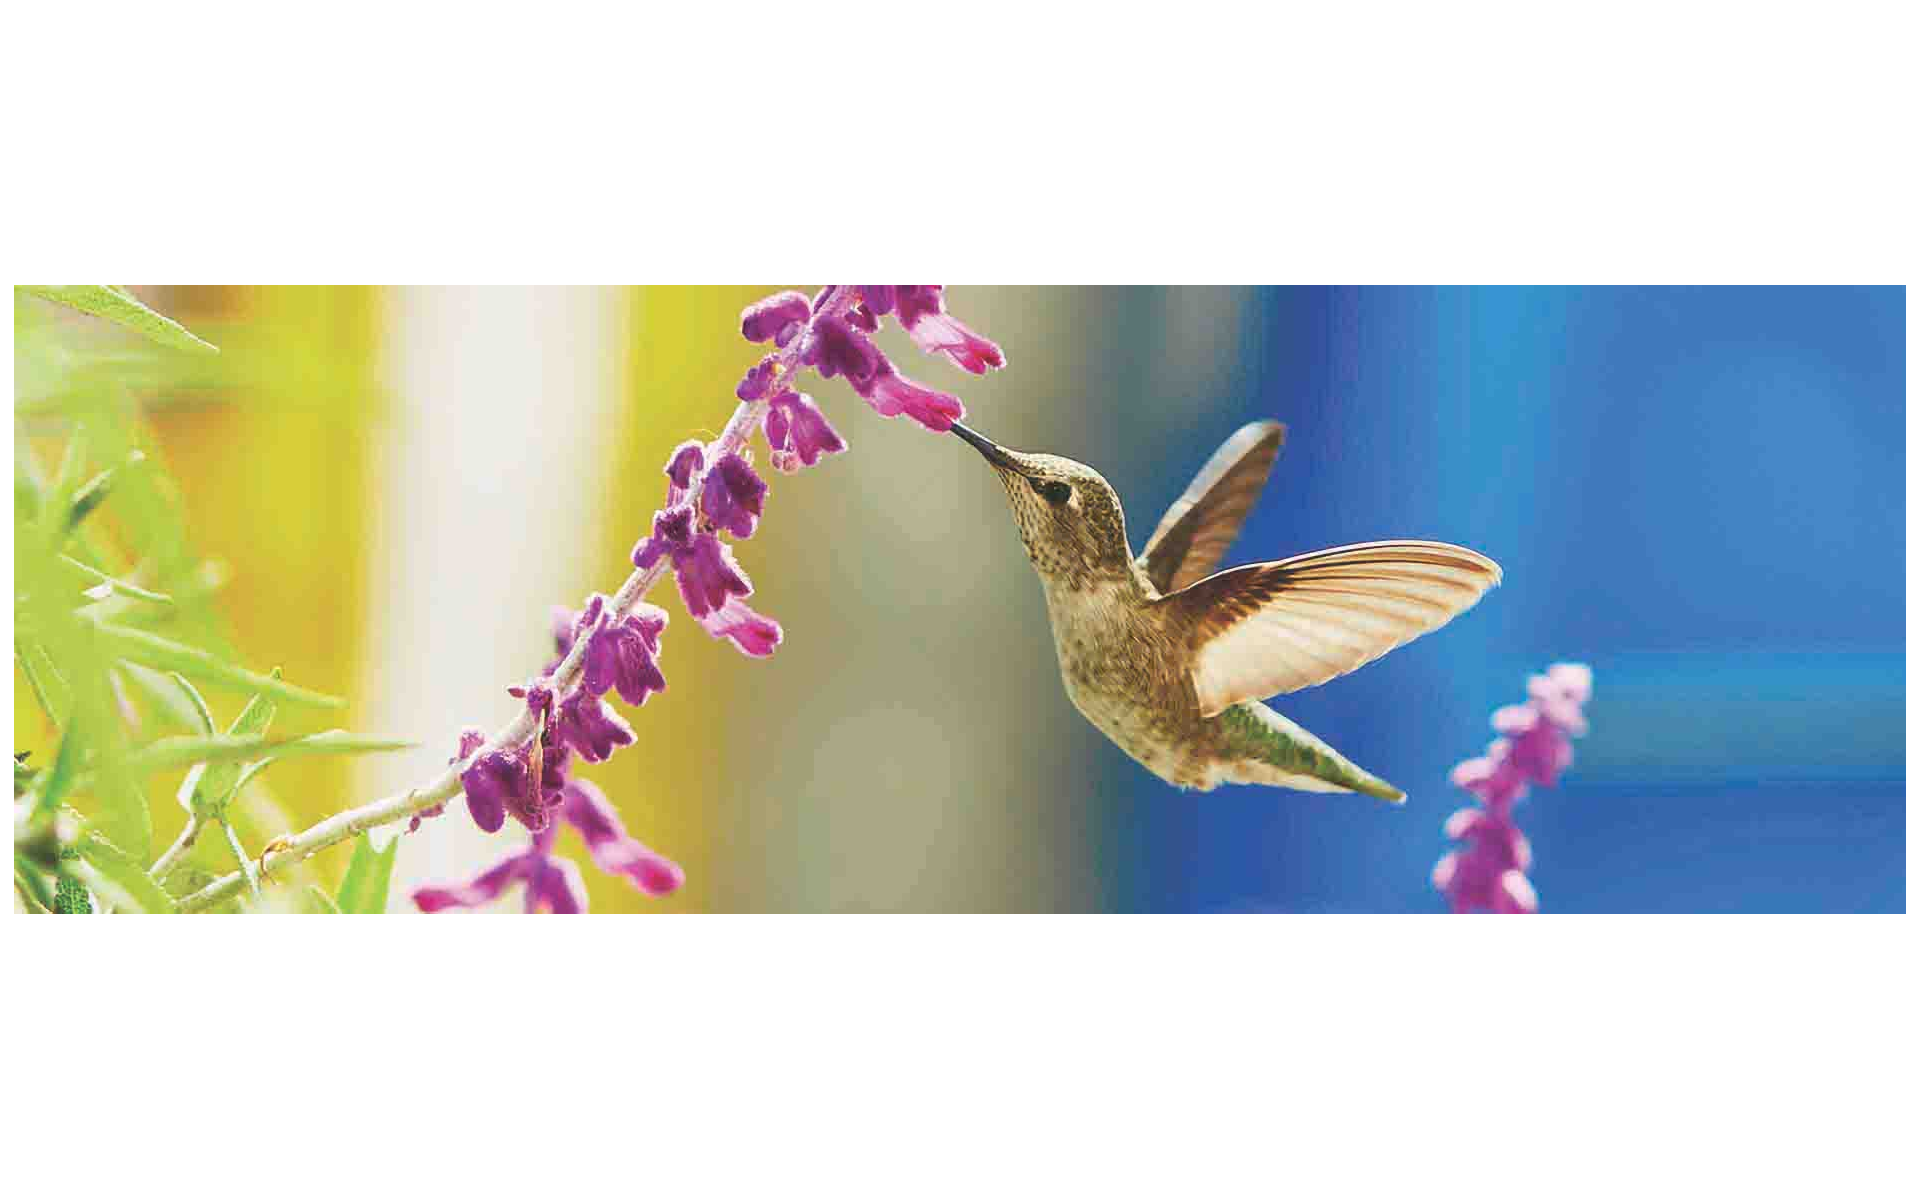 The Hummingbird: Small in Size, Great in Art